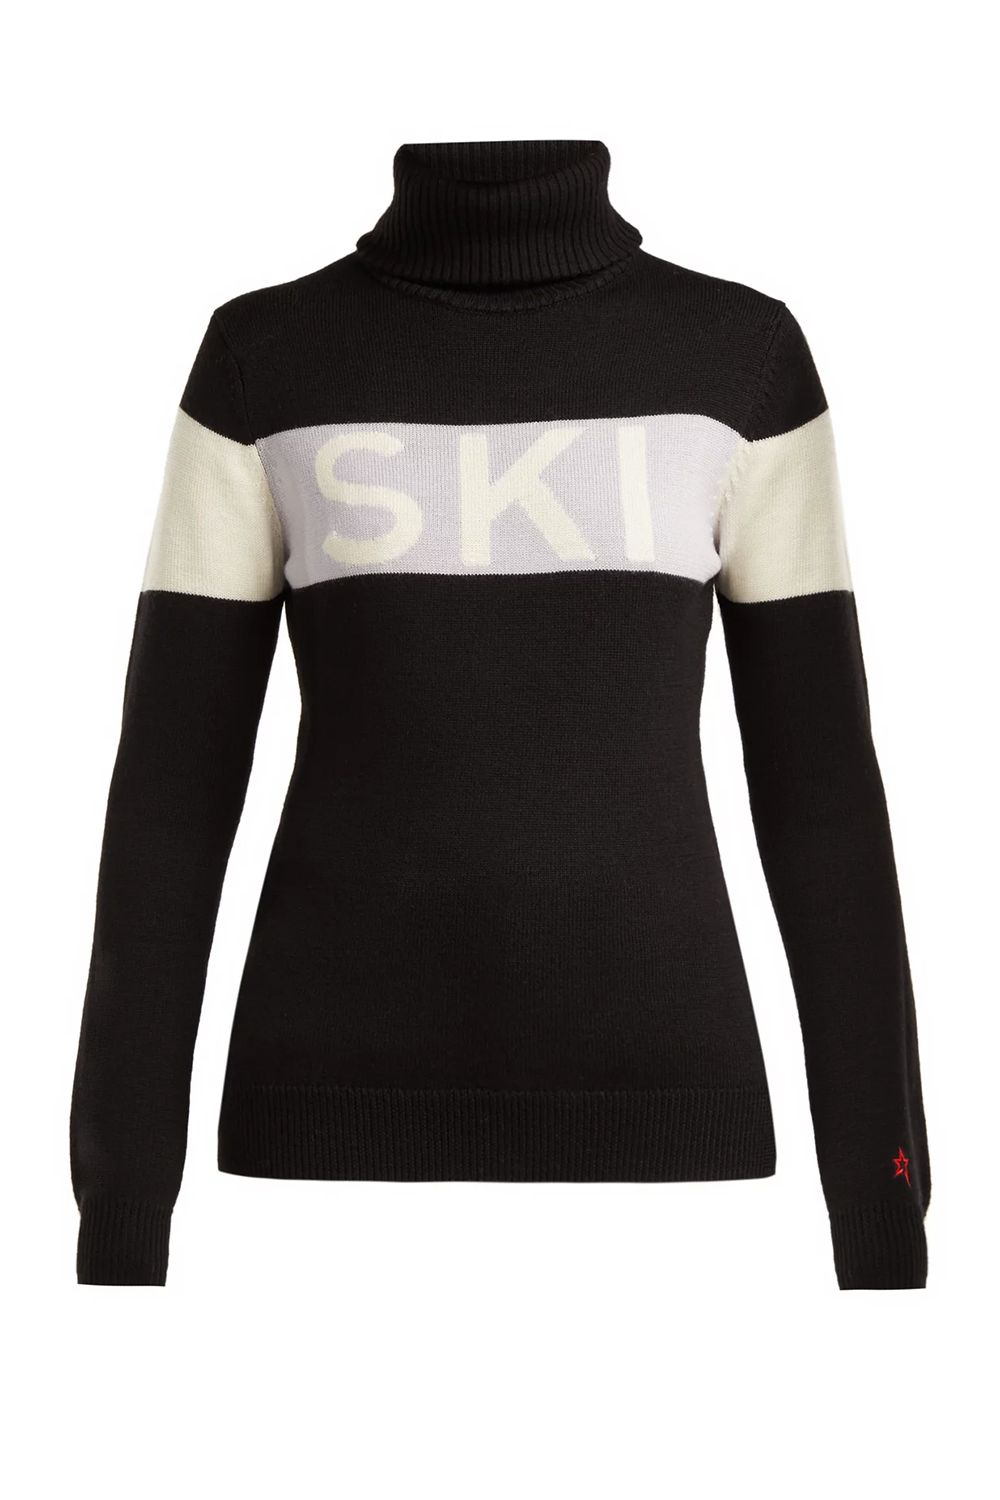 Women s ski wear  the best and most stylish snow-ready clothes for the  slopes this season 2018 2019 ccce66ed5